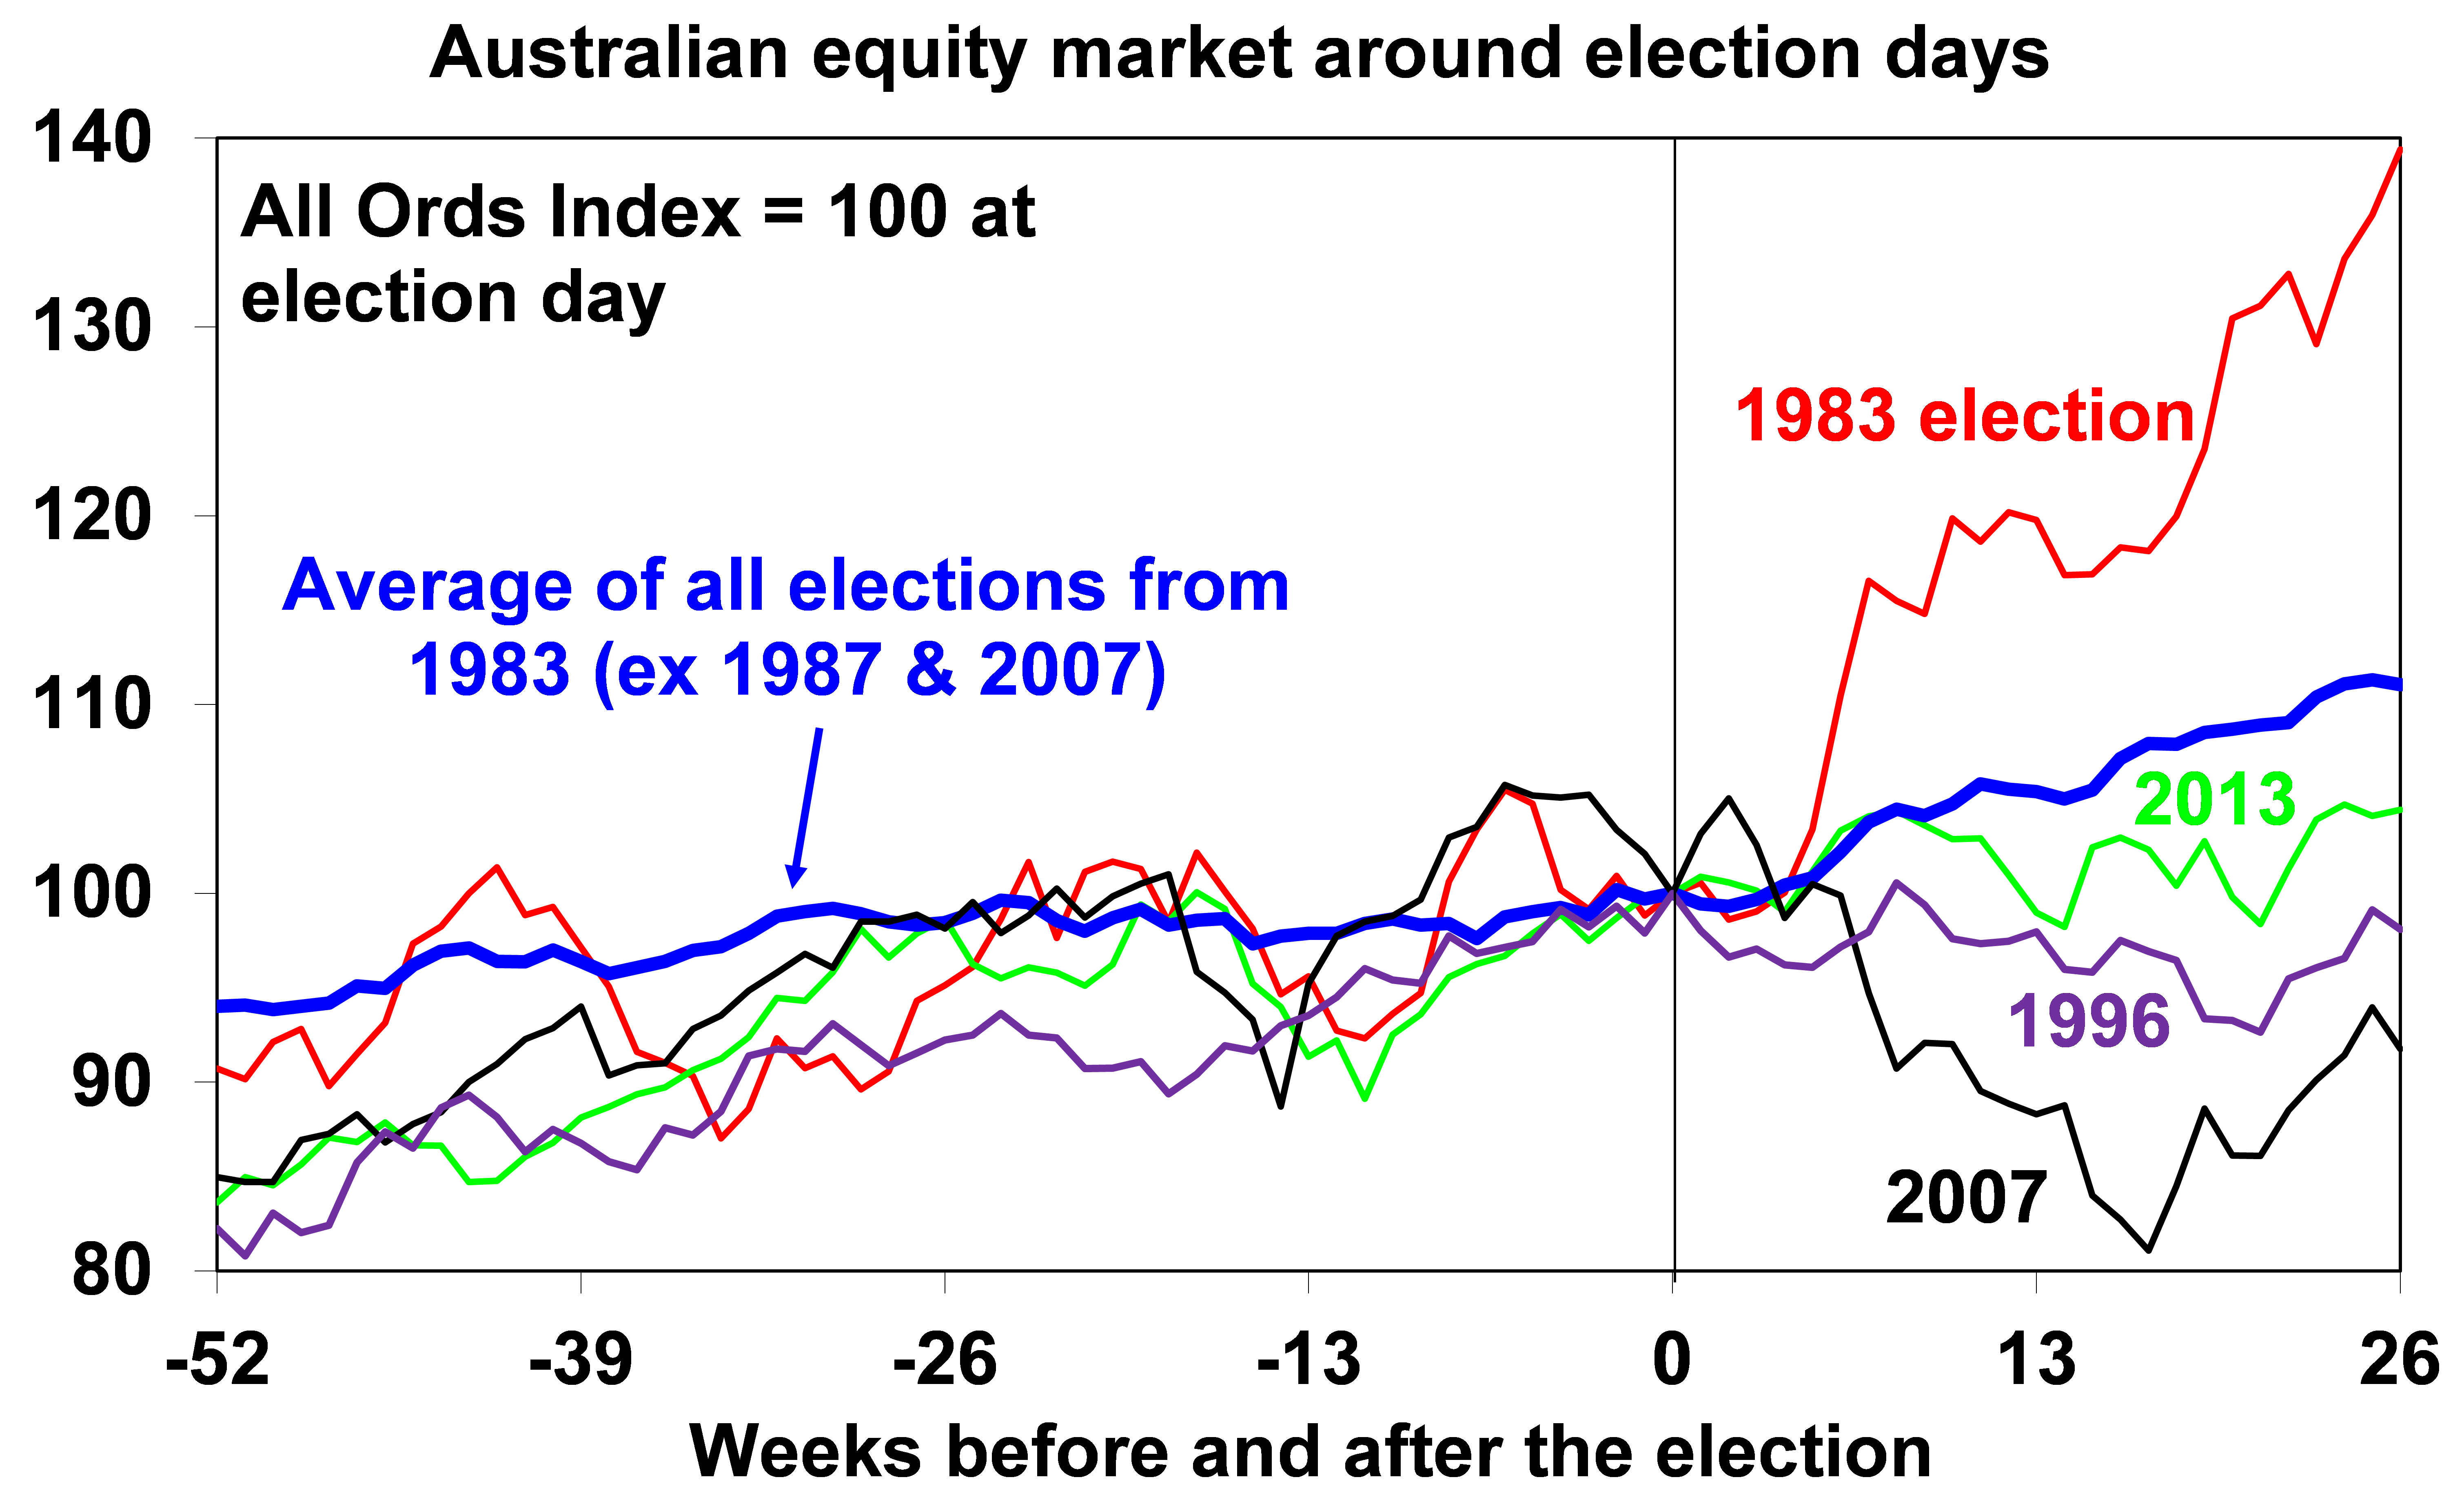 Chart of equity market around election day